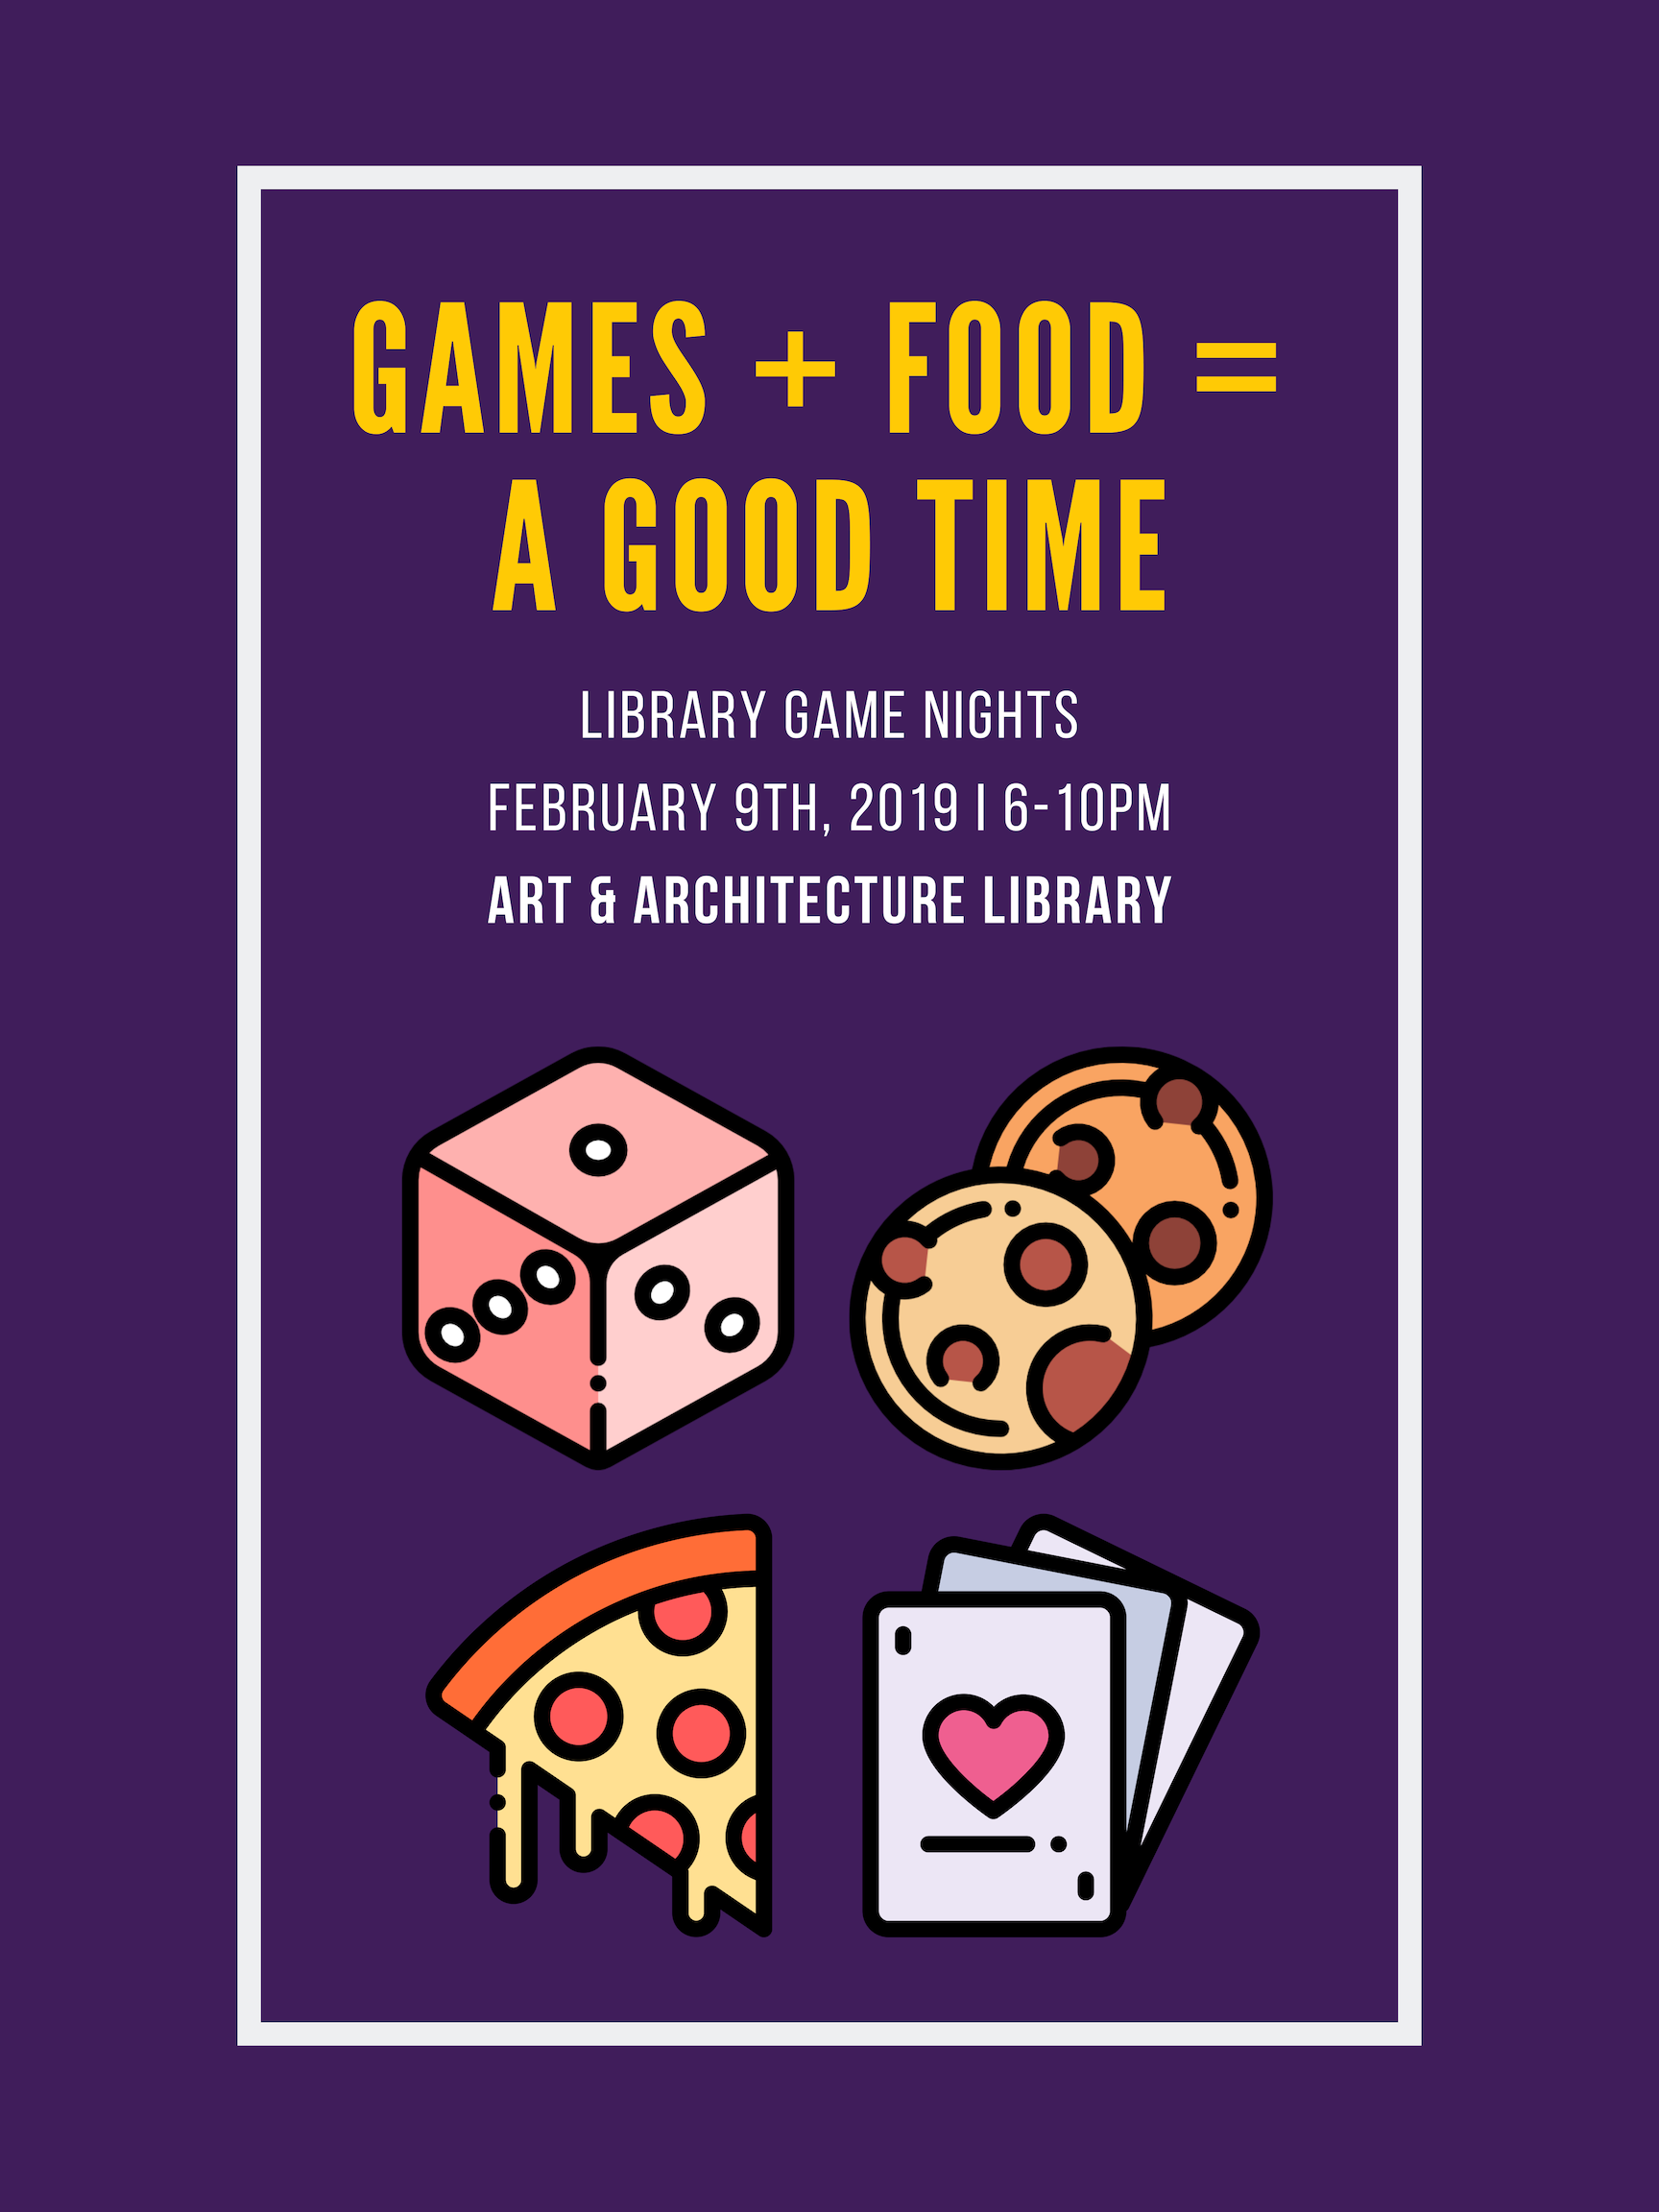 Game Night Poster Library Games Game Night Game Food